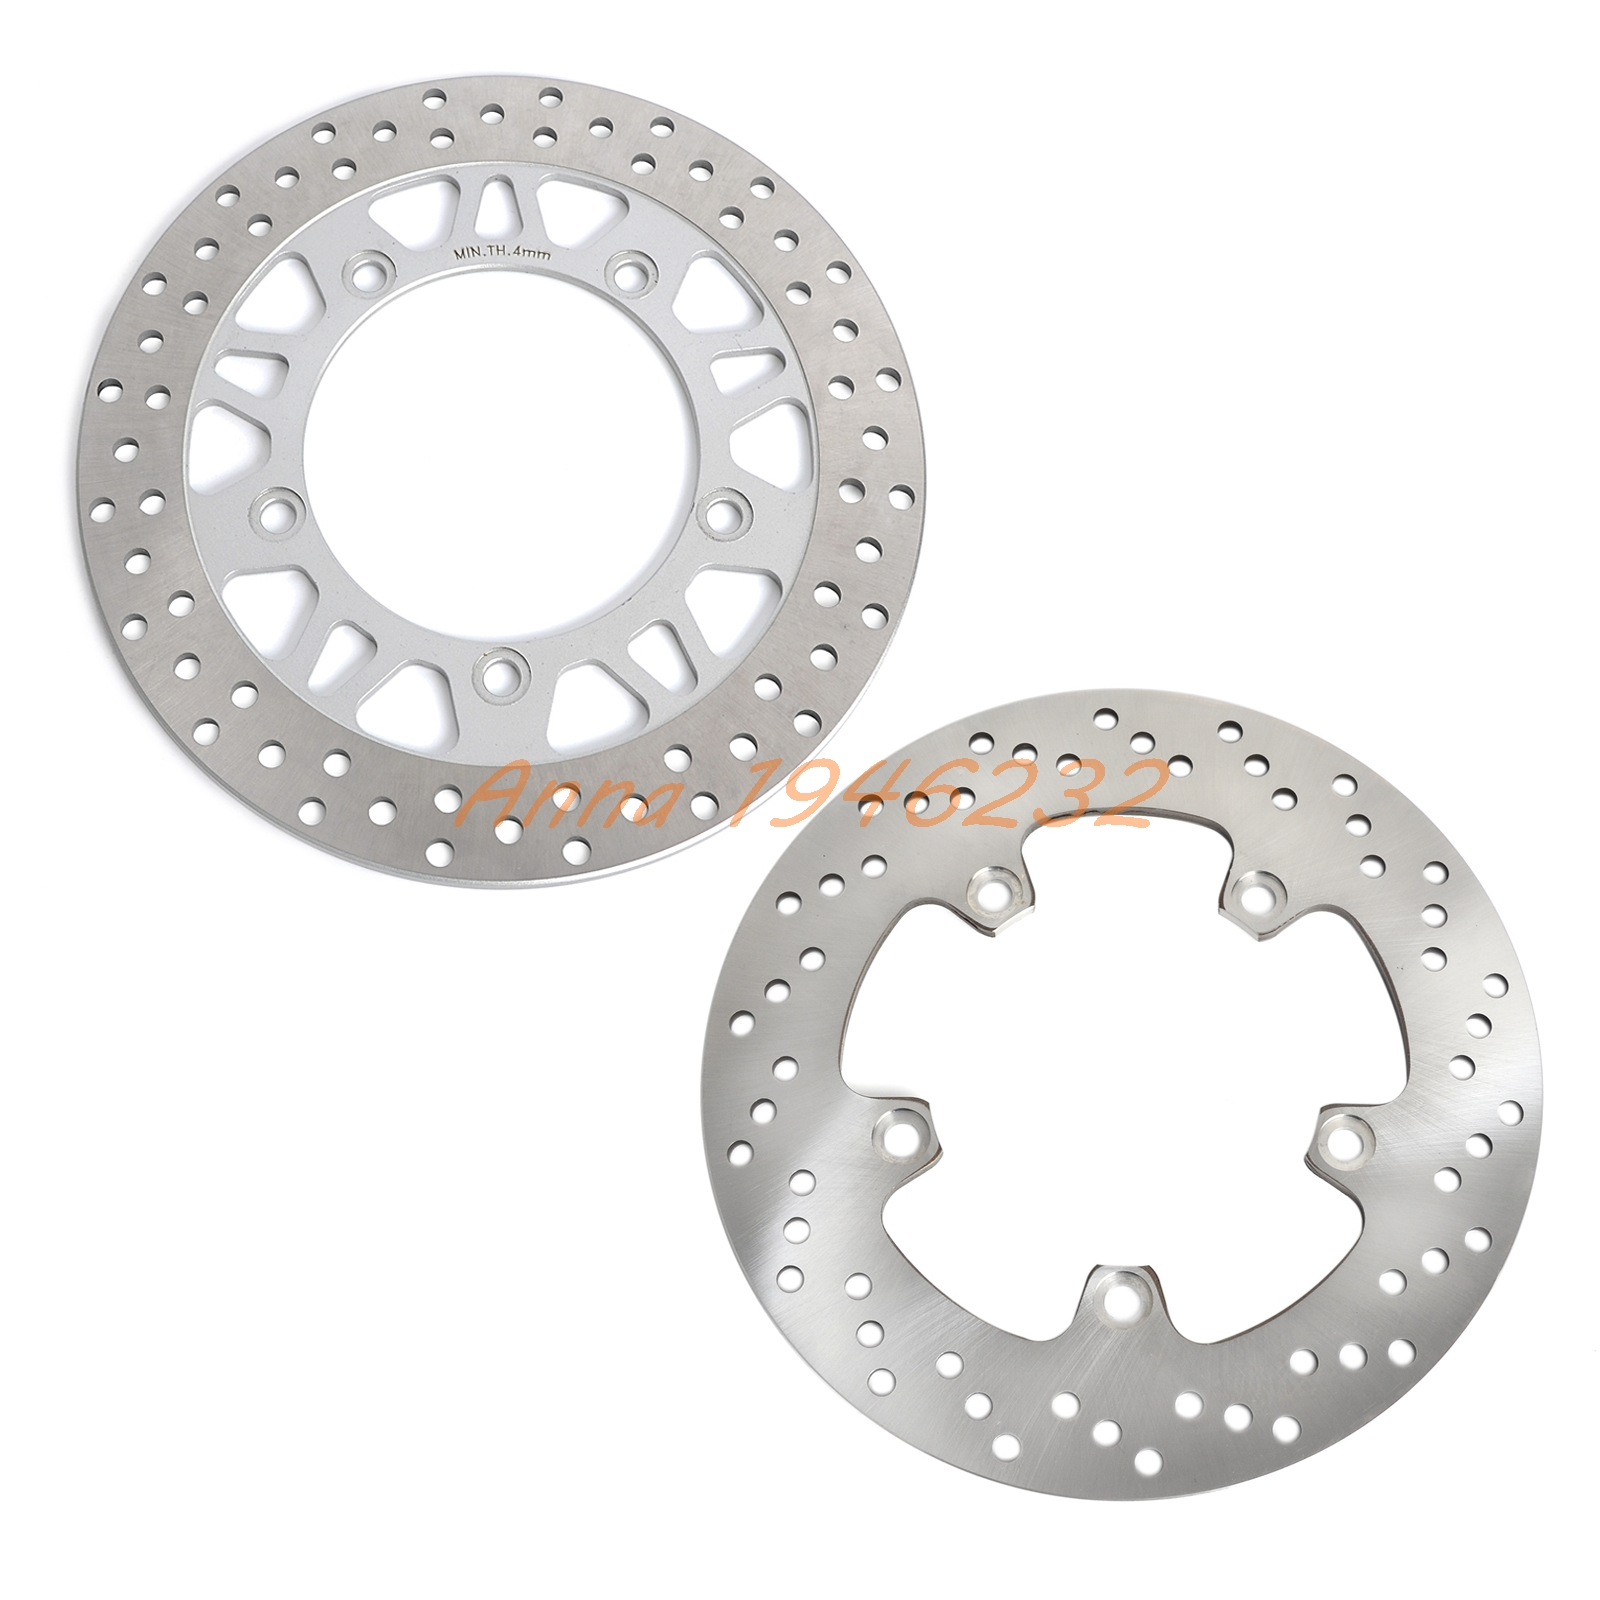 New Motorcycle Front & Rear Brake Disc Rotor For Suzuki AN650 2004 2005 2006 2007 2008 2009 2010 2011 2012 AN 650 pair steel front brake rotors disc braking disks for moto guzzi norge t gtl 850 2007 breva 1100 2005 2007 stelvio 1200 2008 2009